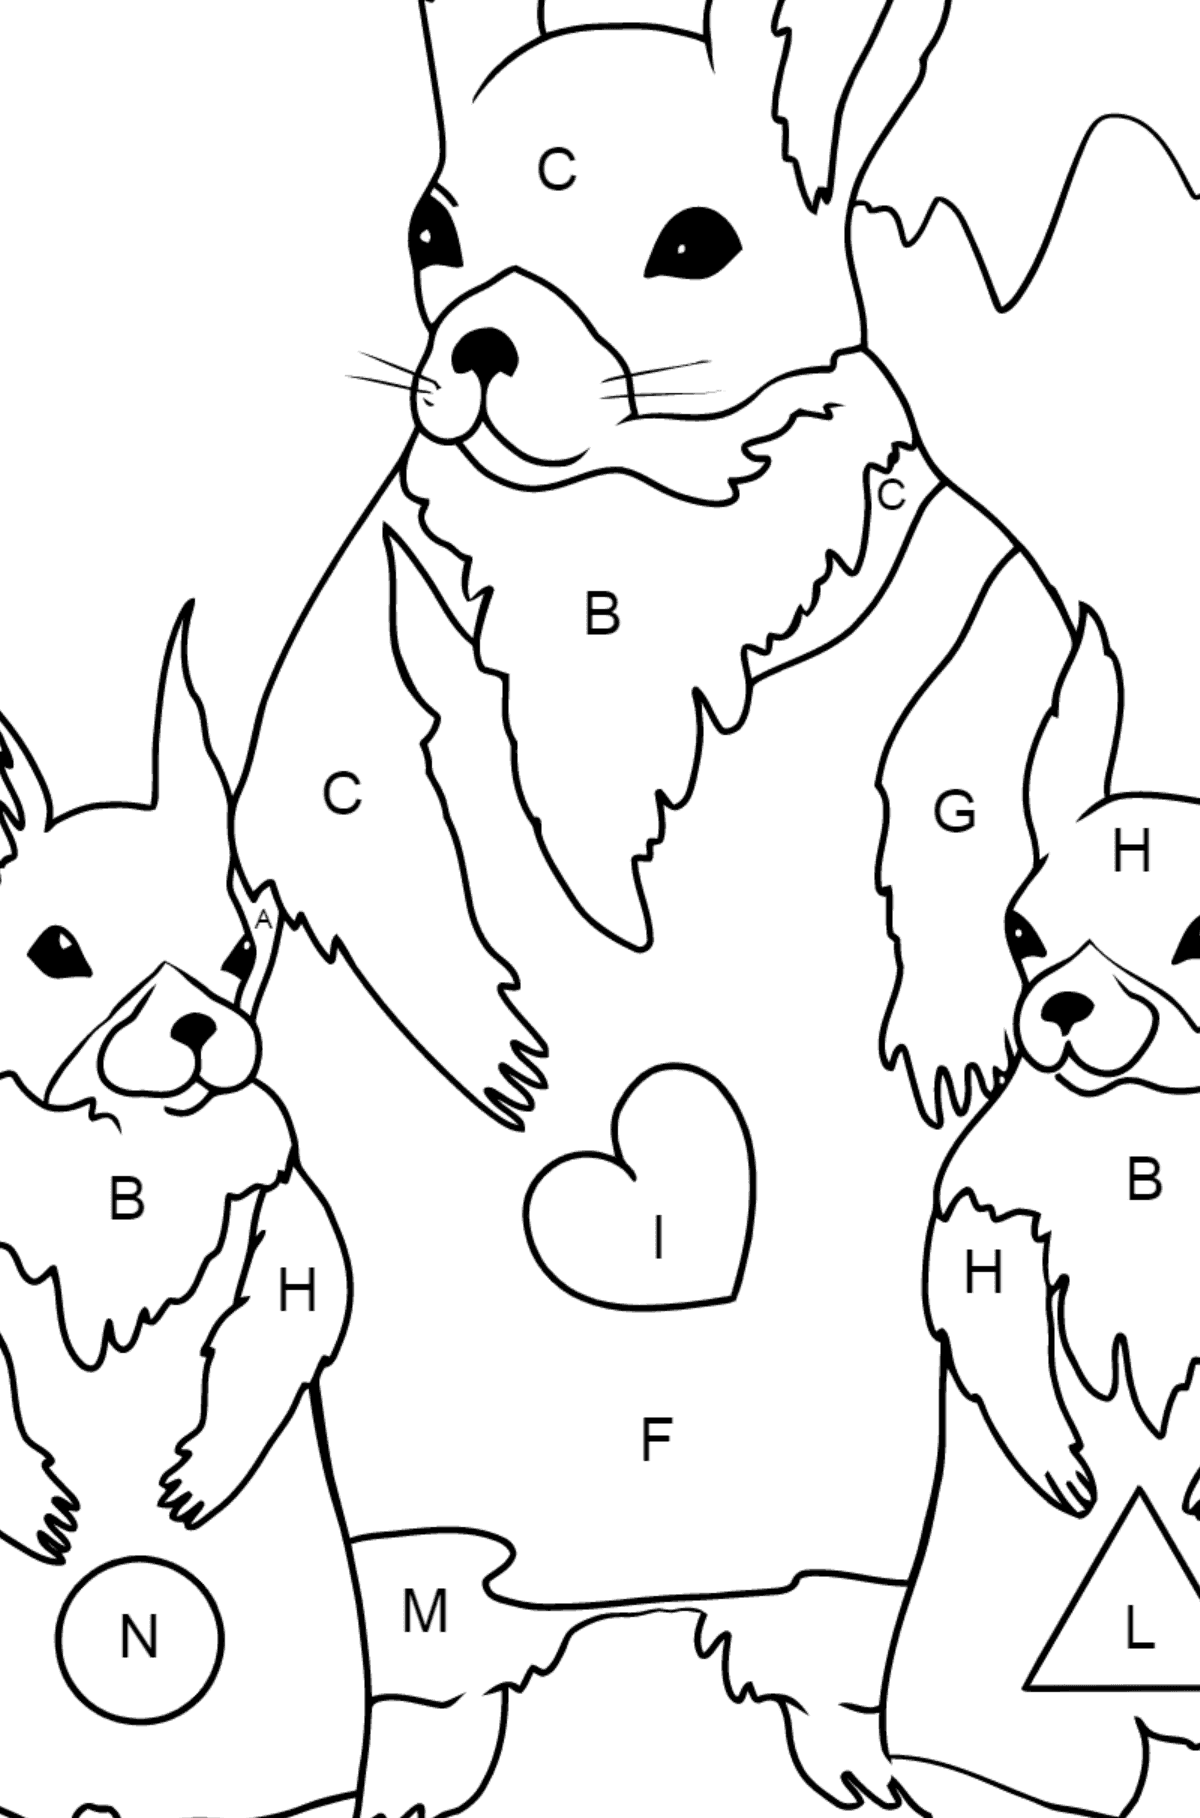 Spring Coloring Page - Beautiful Squirrels for Children  - Color by Letters